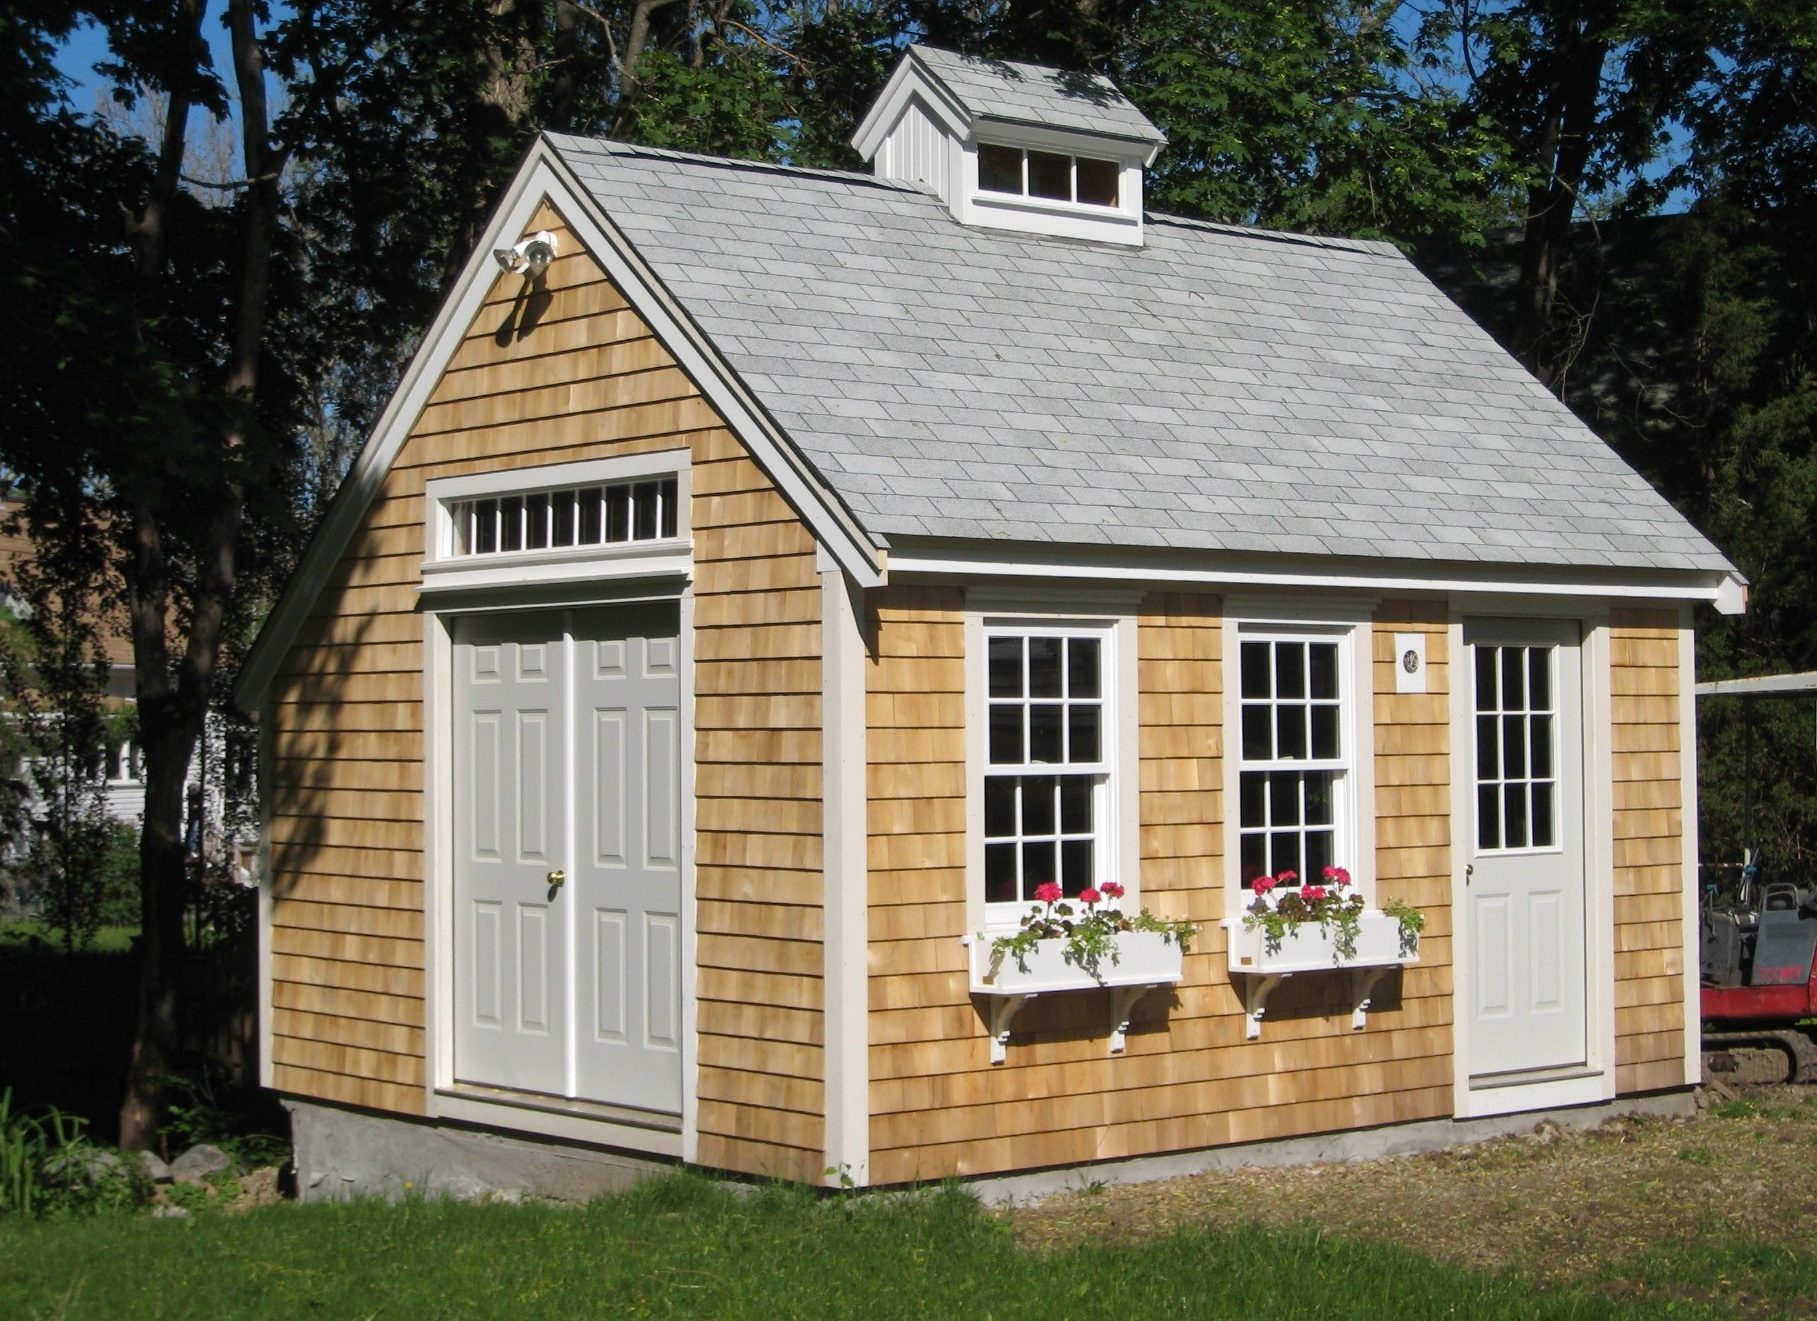 fairytale garden sheds - Garden Sheds With Windows